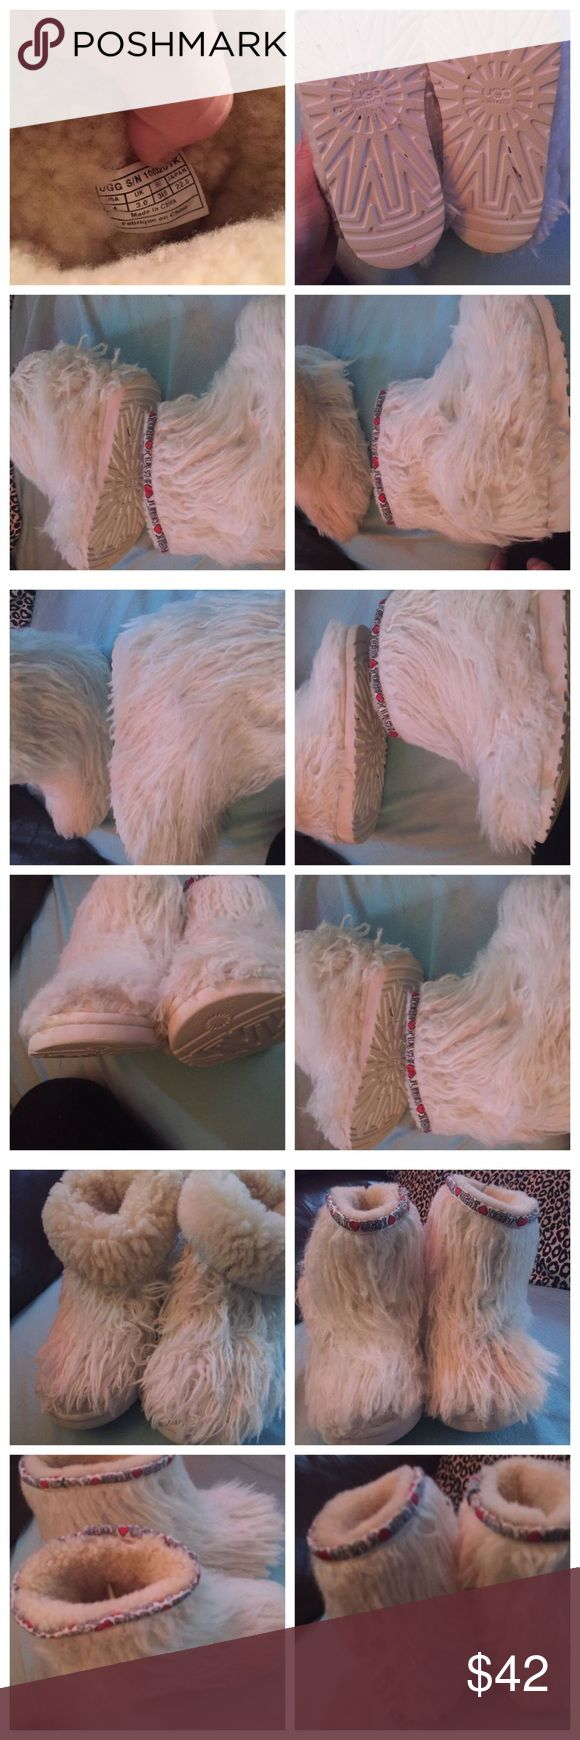 """Size 4 uggs, white long hair. White long hair ugg boots.  """" Mongolian"""" hair ugg boots. These are size 4/ USA 4     Bought these about 3 years ago.  I brushed the hair on the boots so you are able to see the accurate description. The front/side.  These are short and inside is """" genuine sheep skin."""" Eva molded and """" ugg"""" logo on the bottom sole of the boots. Going around the top of the boot  """" black, red & writing"""" It says """" I ❤ugg."""" I took pictures of the labesninside the boots.  Smoke free…"""